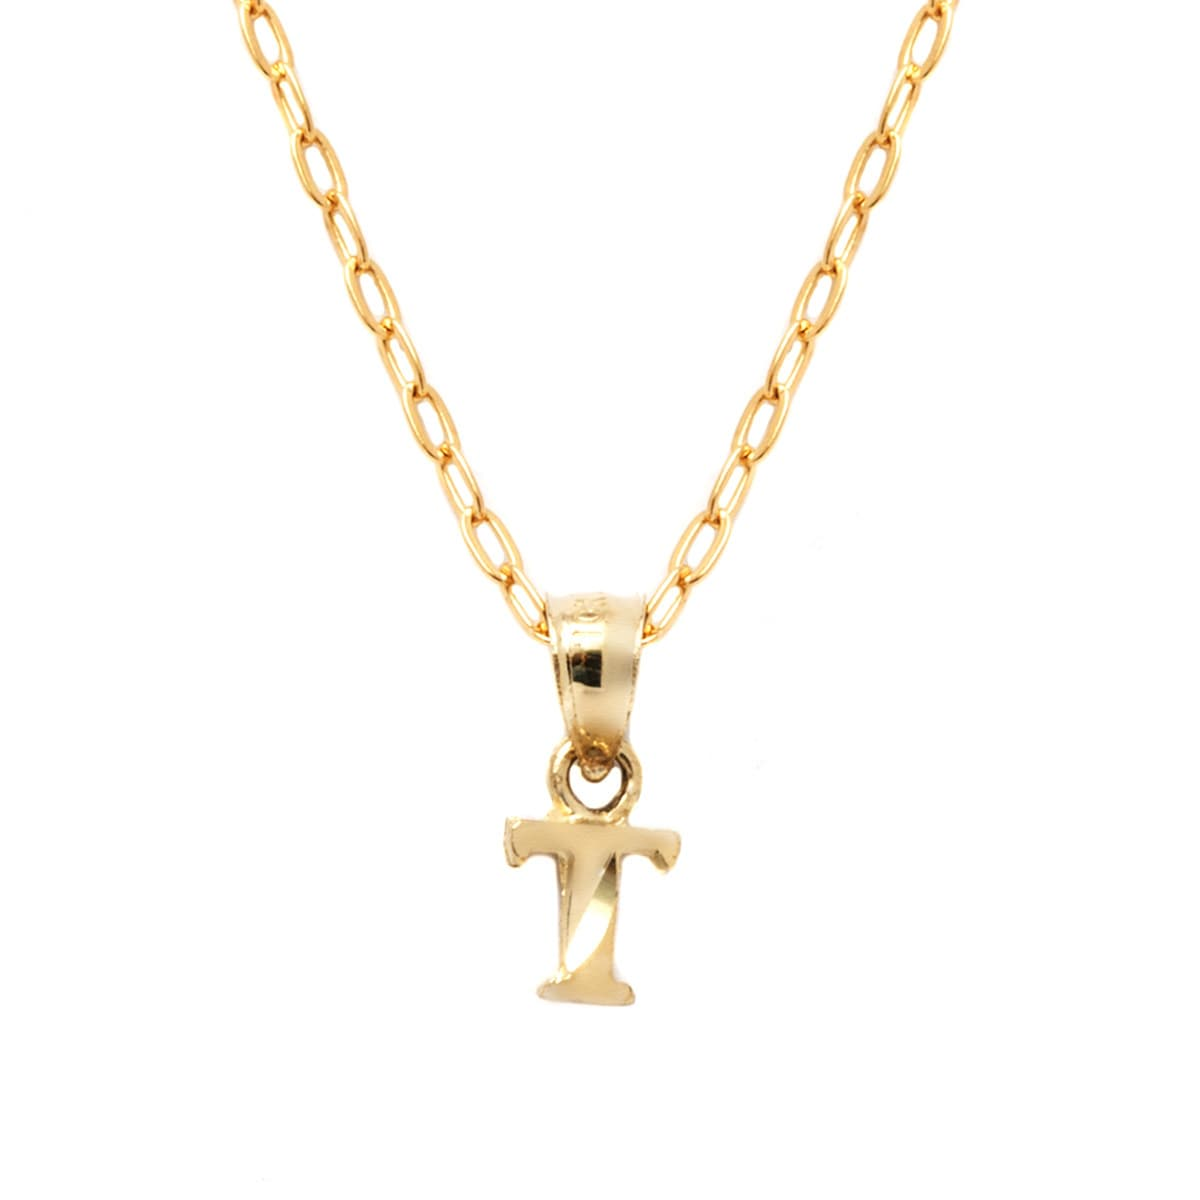 abcde letter deco product necklace gold wndrlnd personalised pendant initial small